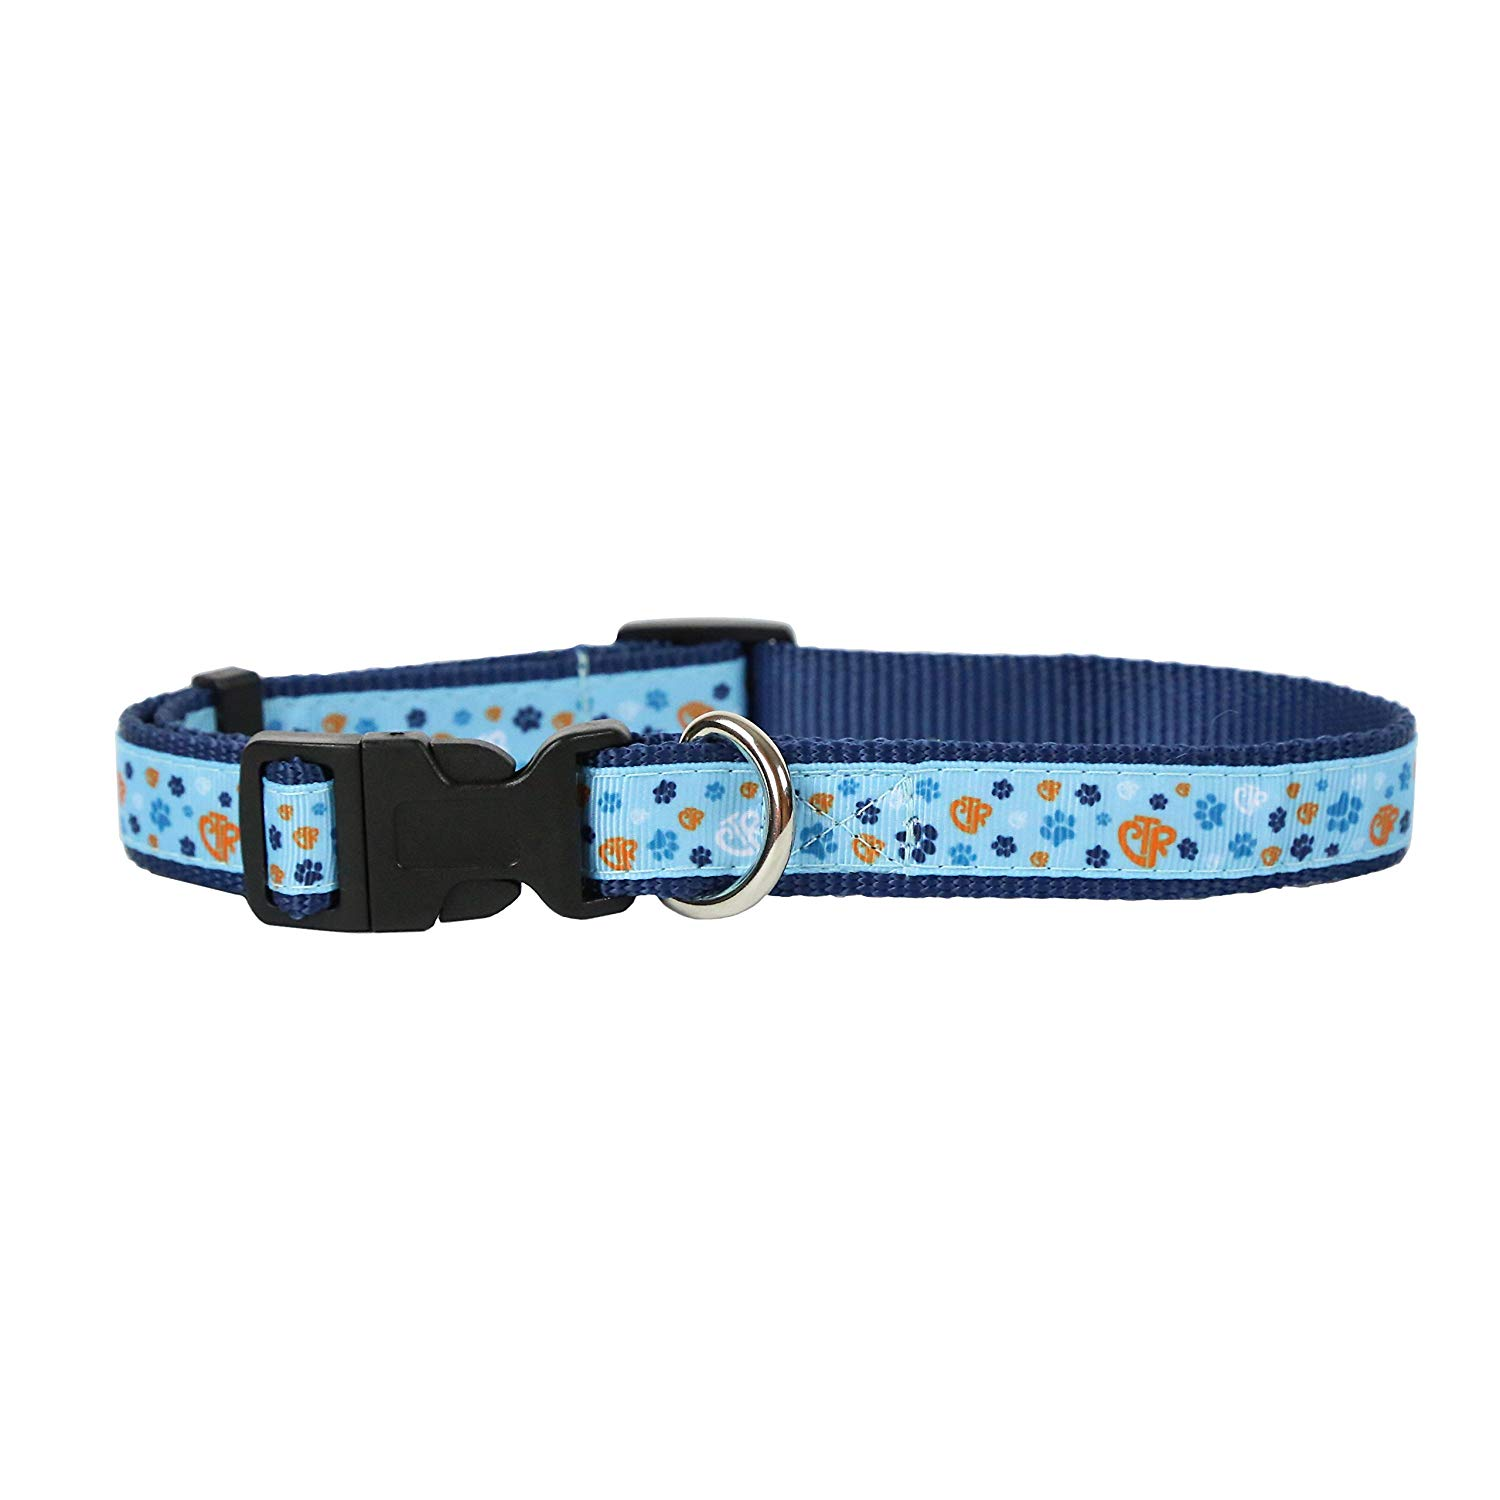 Blue CTR Pet Collar - perfect for dogs, cats, and more - pets can choose the right